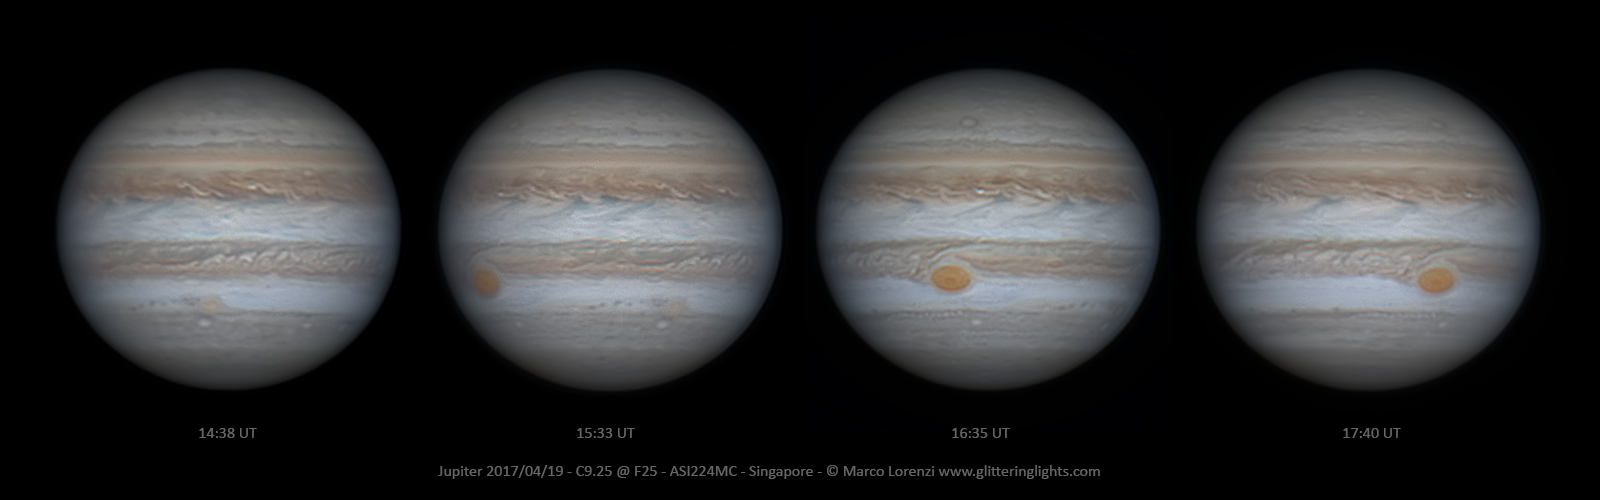 Jupiter-2017-04-19-strip.jpg